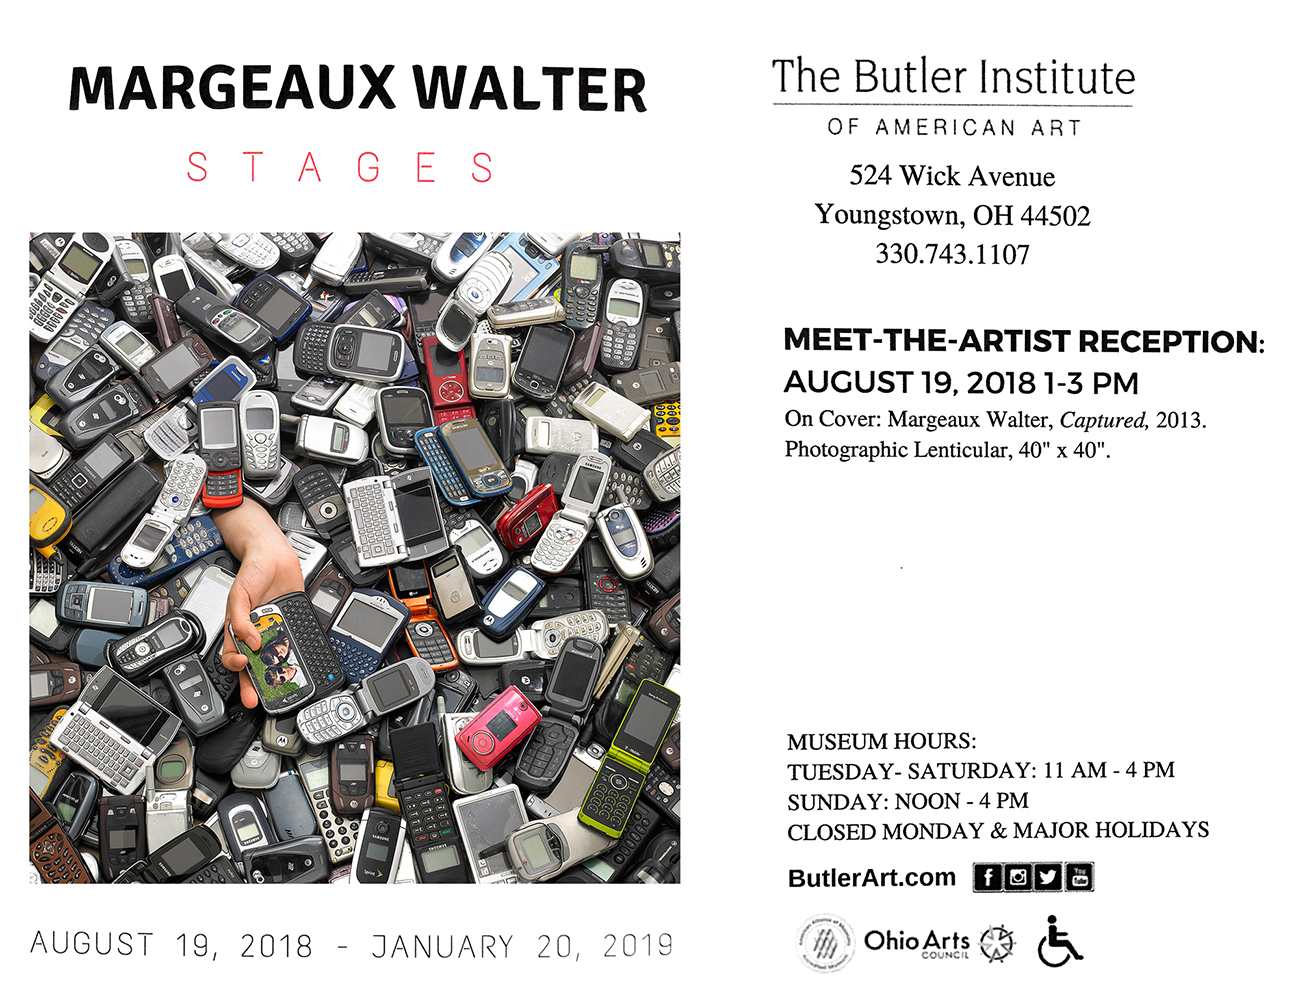 I have a solo exhibition of videos and lenticulars opening at the Butler Institute of American Art in Youngstown, OH on August 19th!  https://butlerart.com/margeaux-walter-stages/